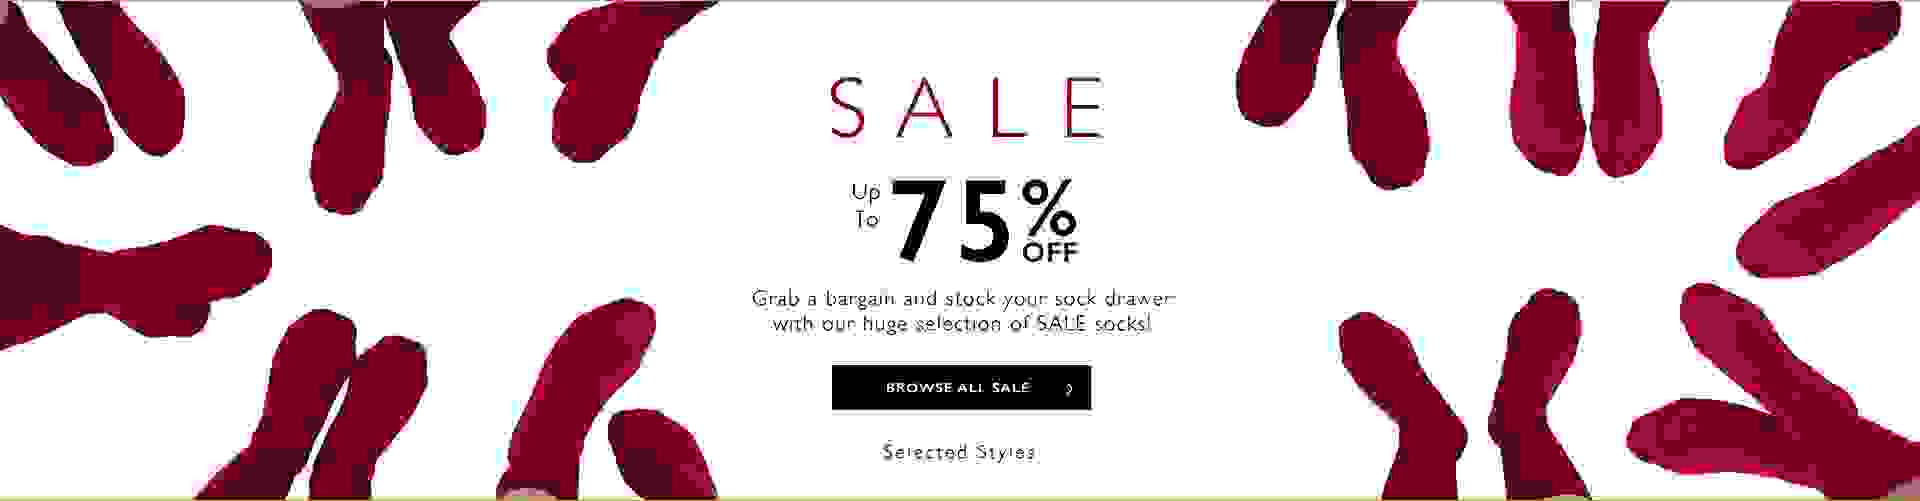 Sale - Up to 75% off selected styles